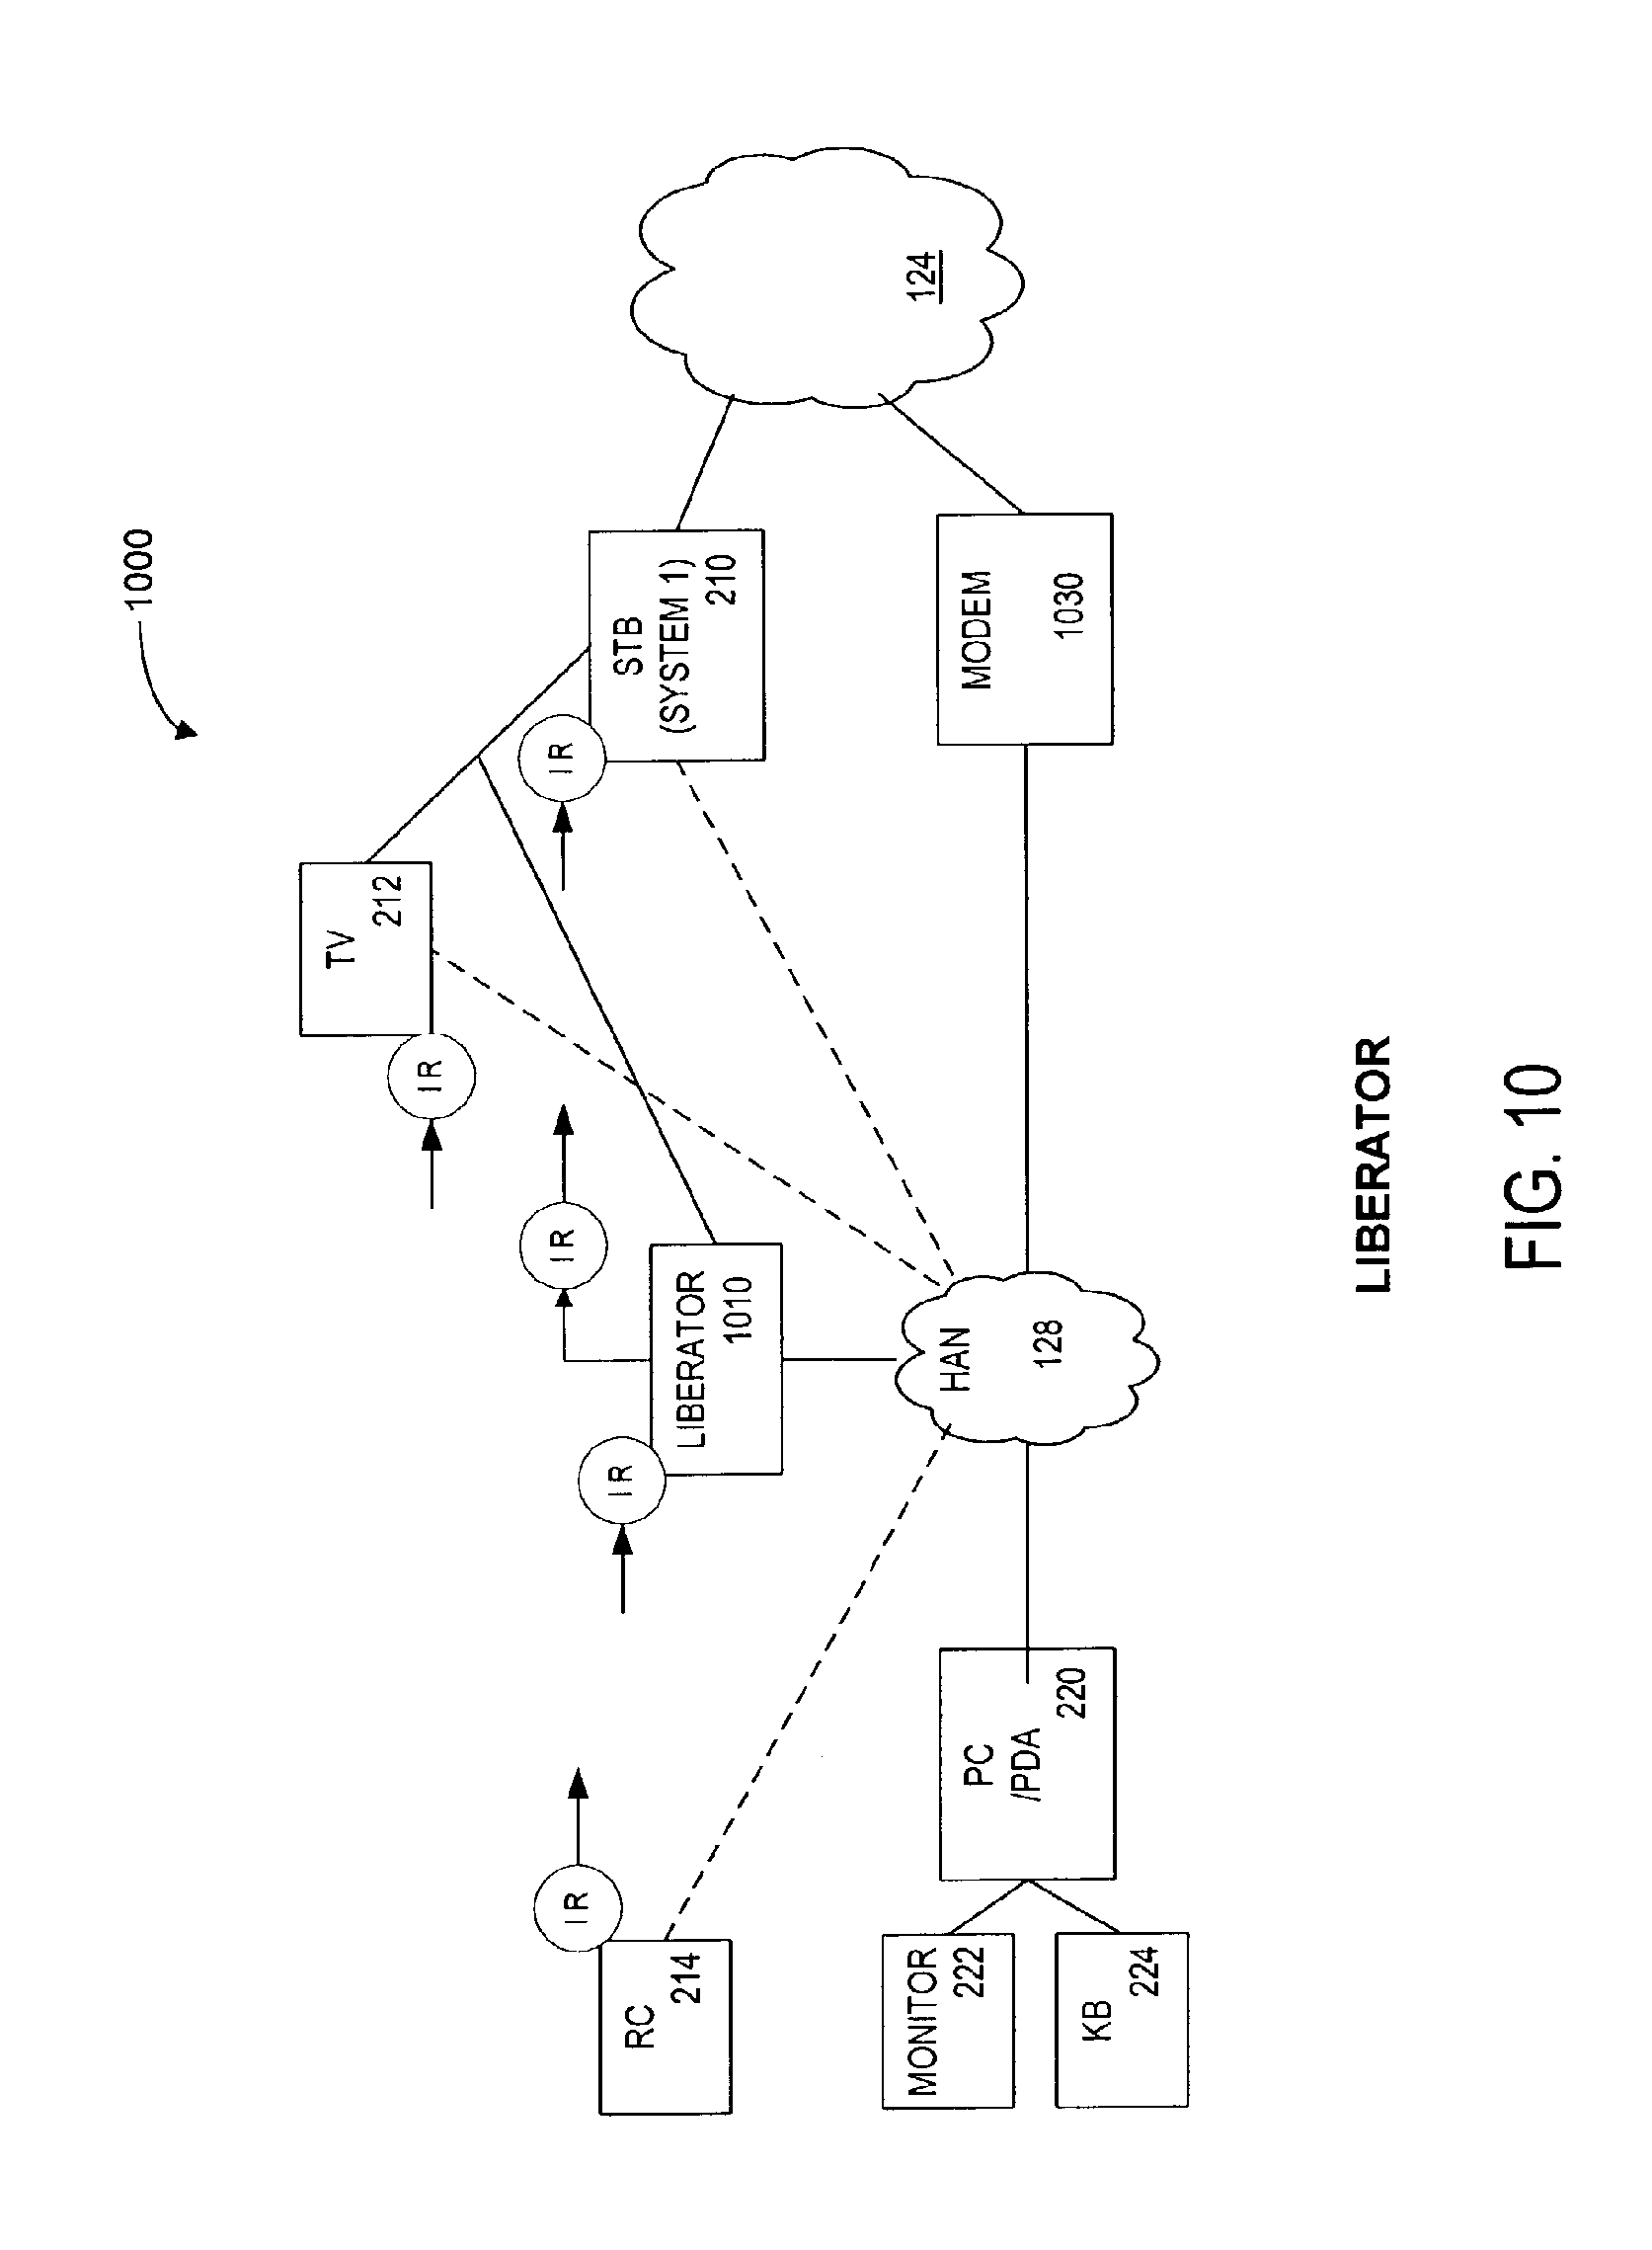 US8646020B2 - Method and apparatus for browsing using